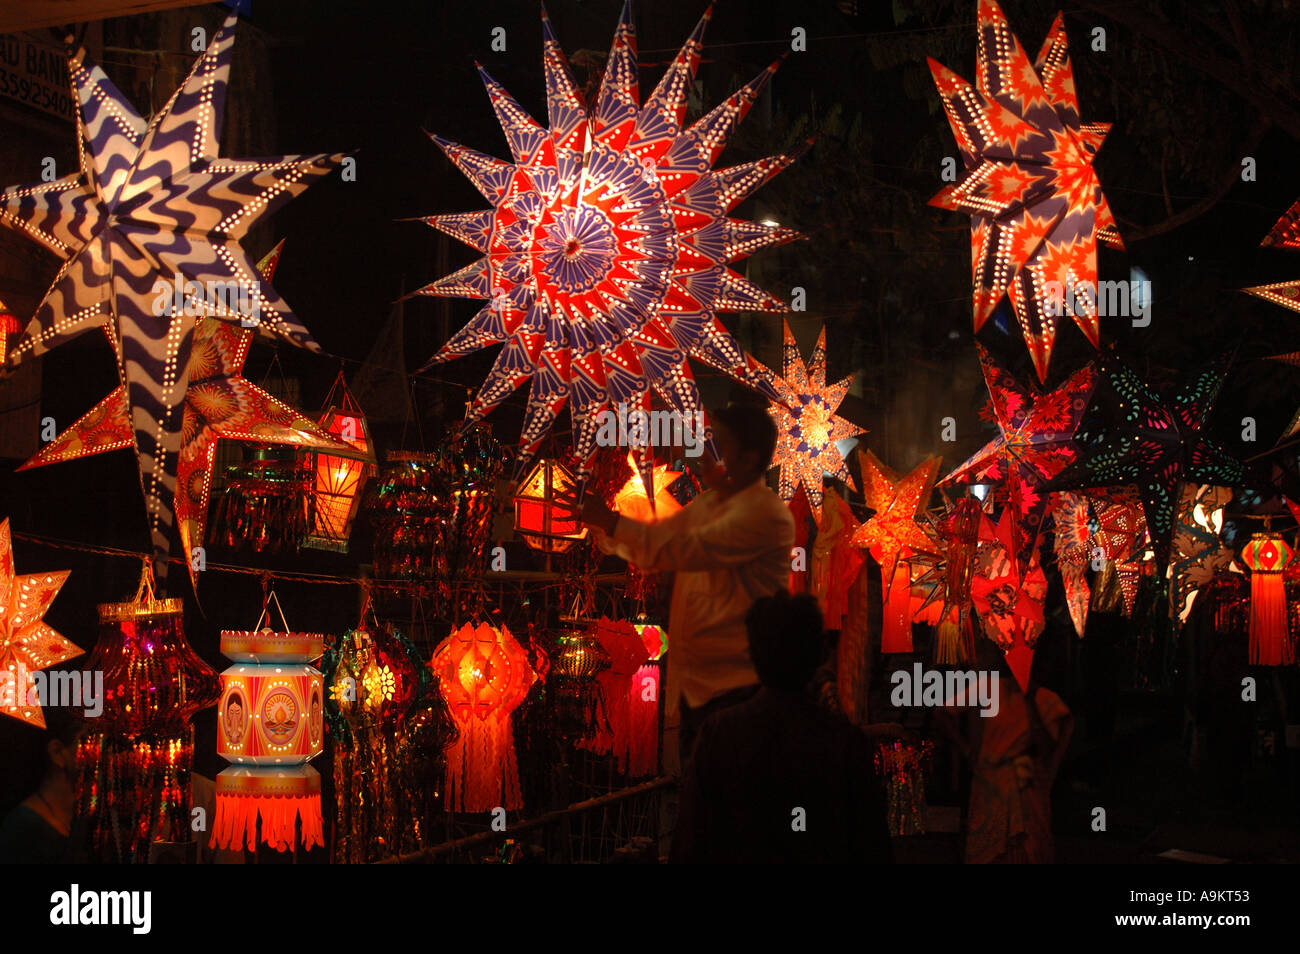 Diwali Indian Festival Of Lights Celebration In India Also Christmas Paper  Lamps Kandeel Star Shaped Circular Asia